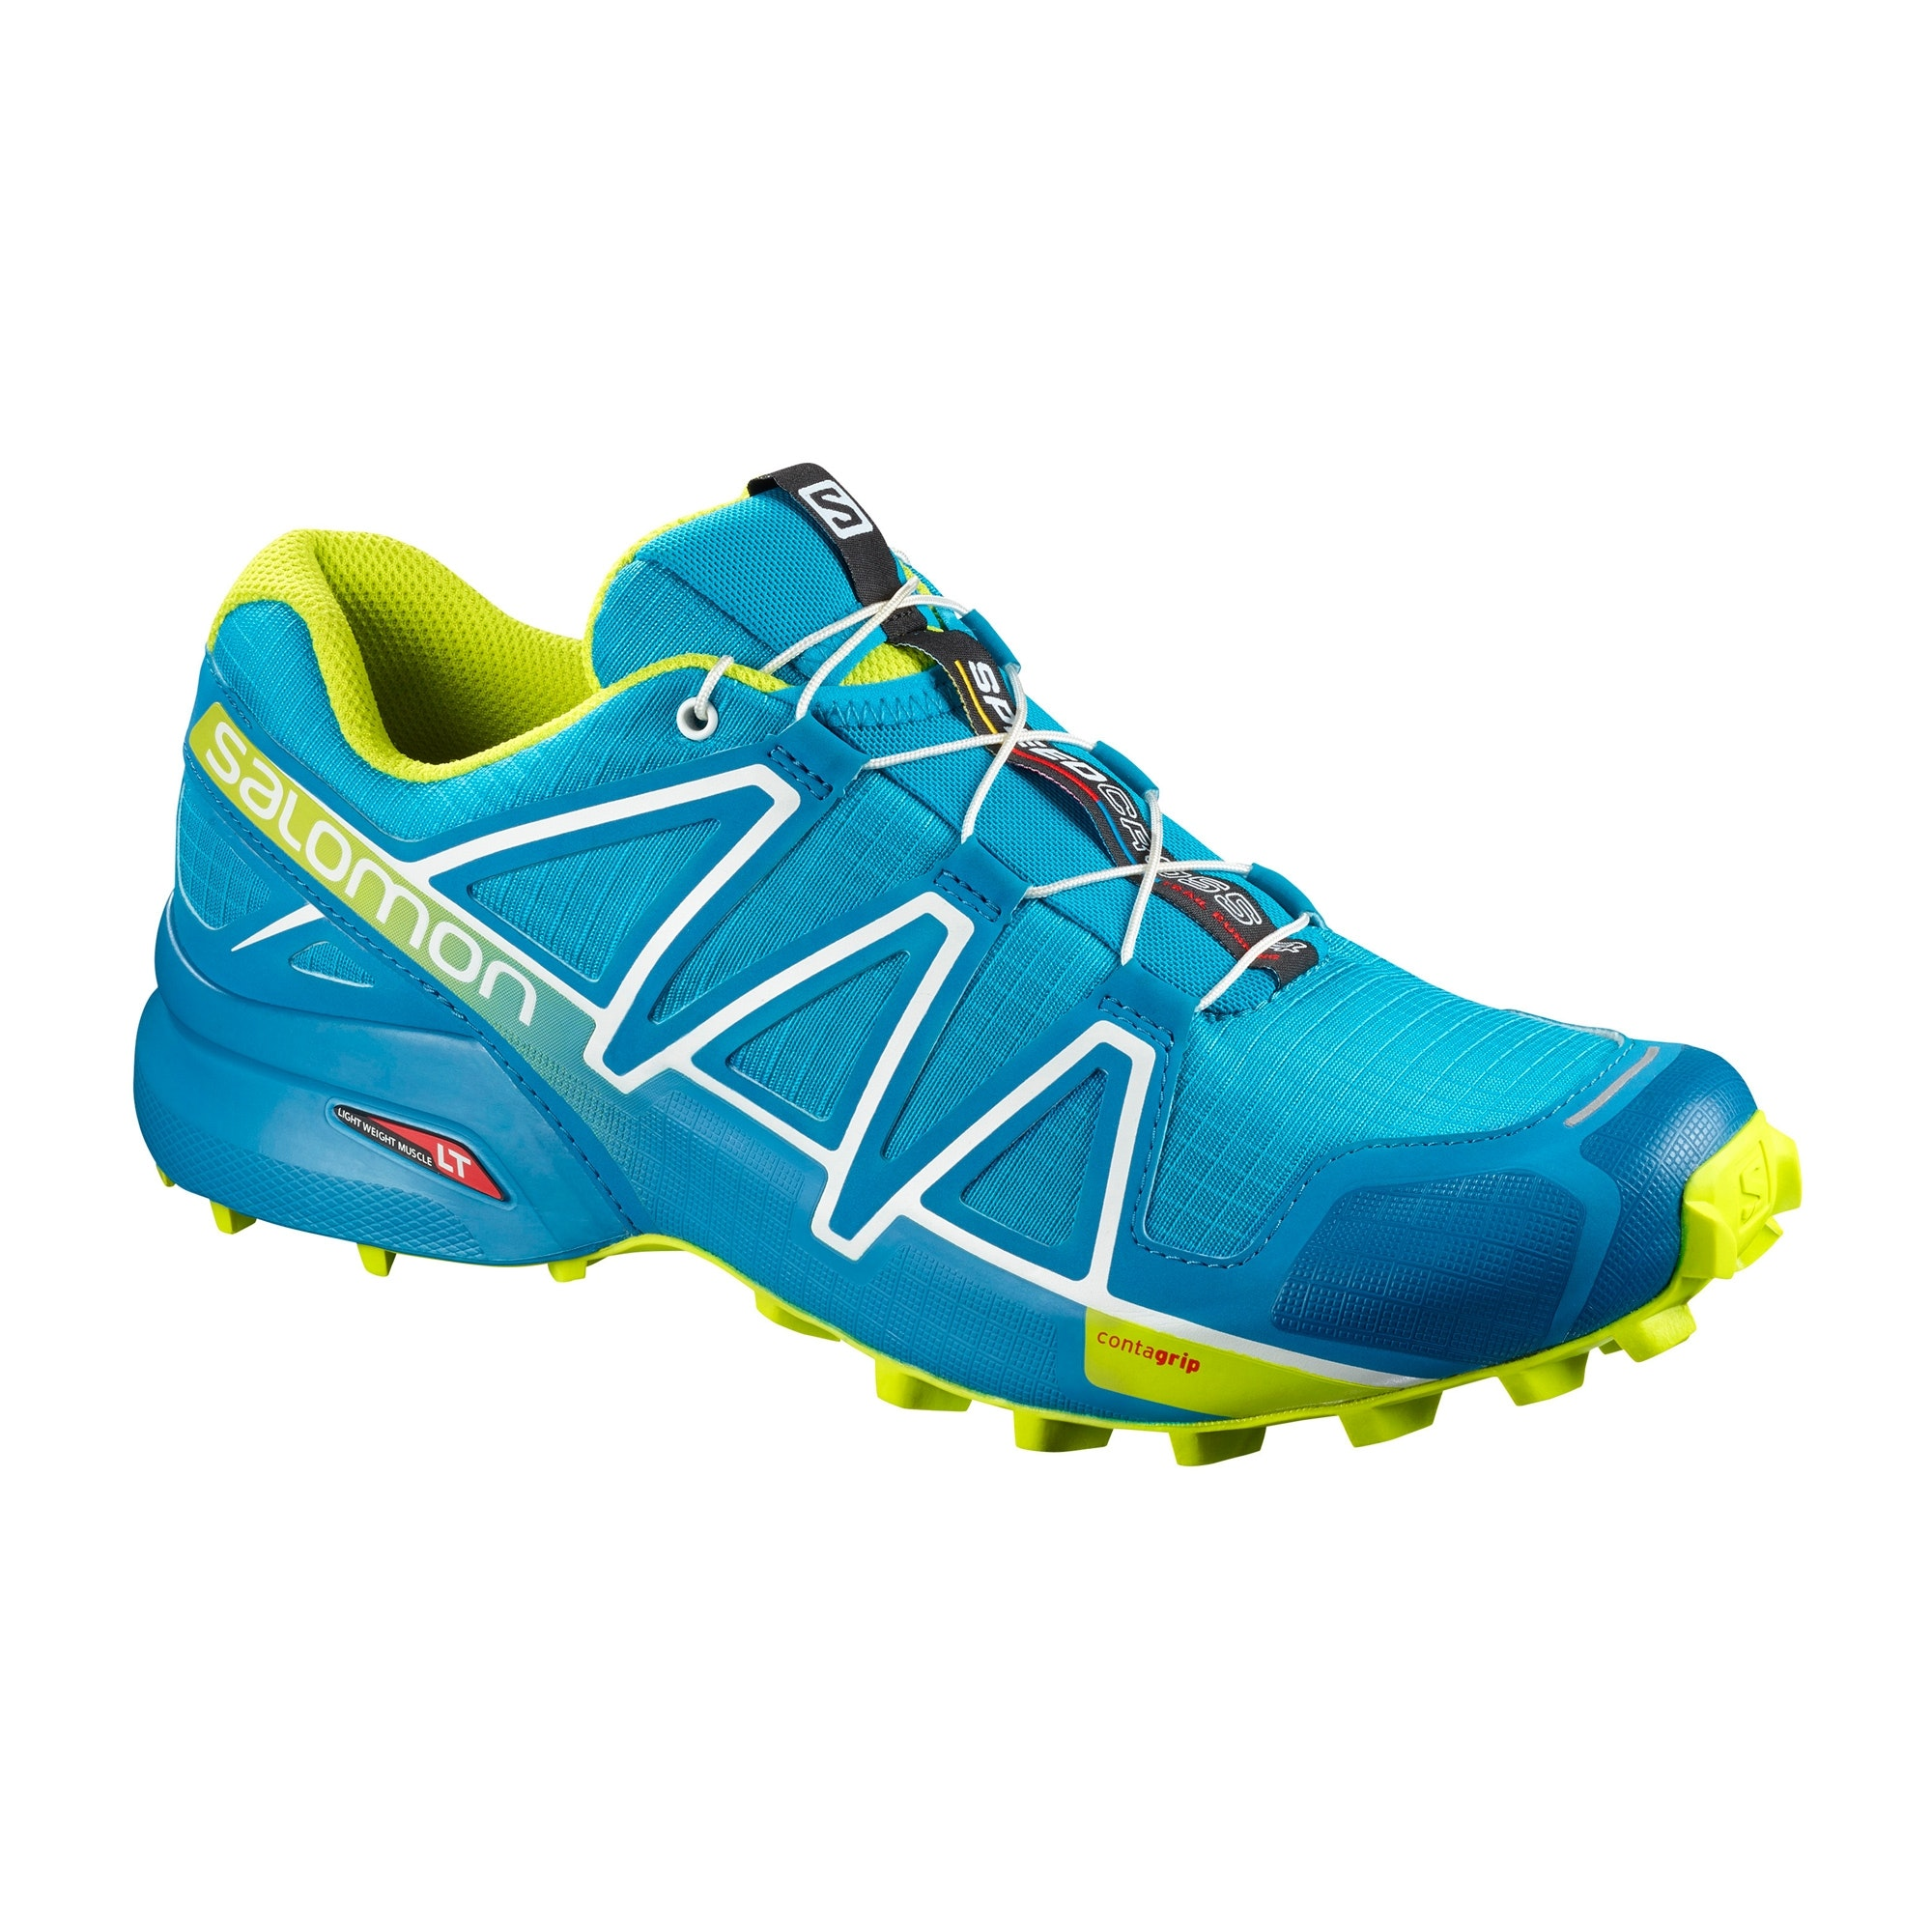 Salomon Speedcross 4 Mens